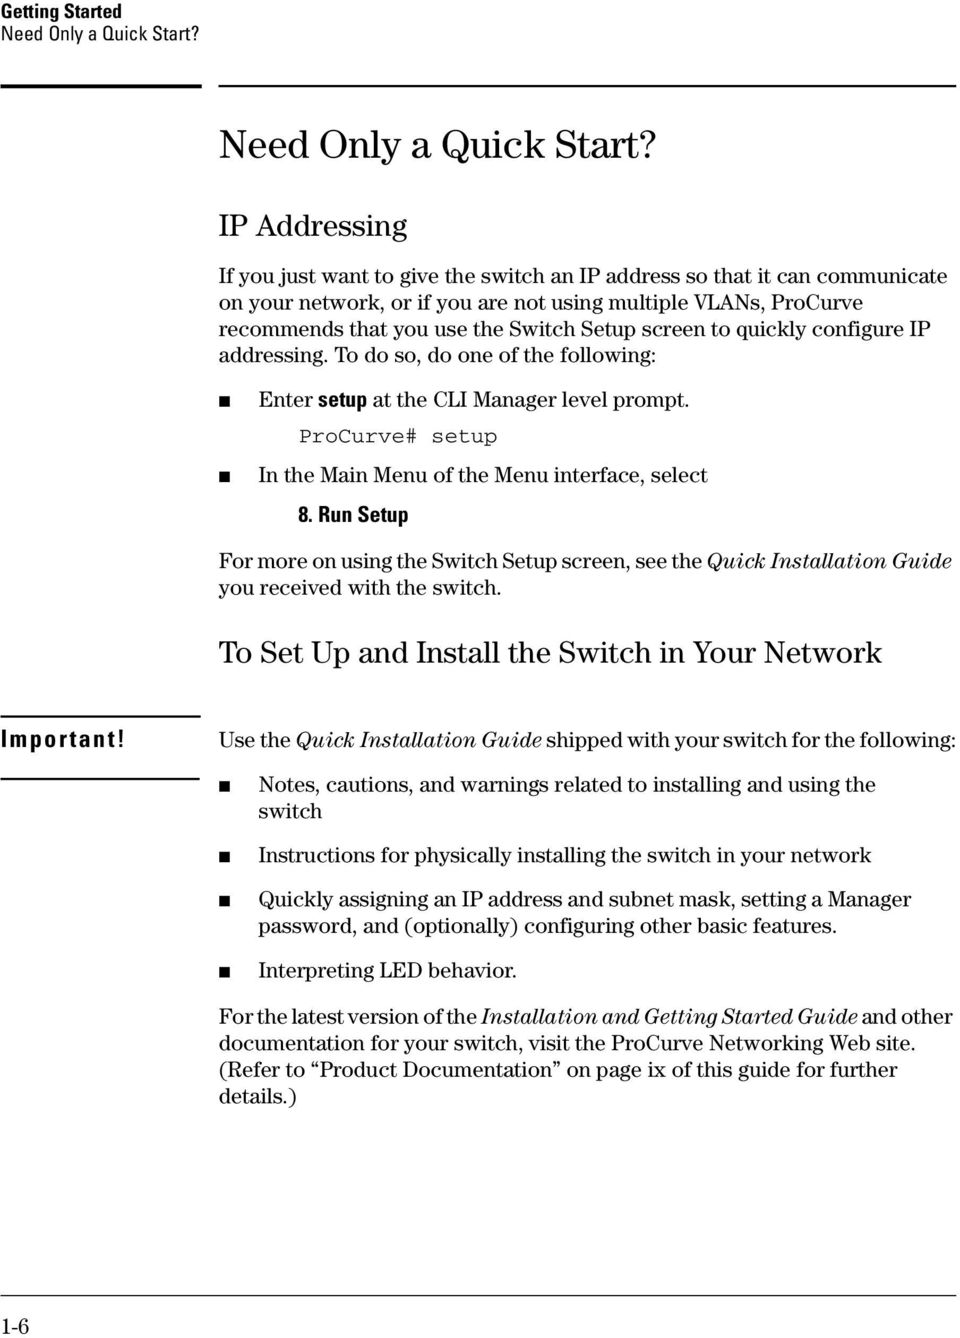 IP Addressing If you just want to give the switch an IP address so that it can communicate on your network, or if you are not using multiple VLANs, ProCurve recommends that you use the Switch Setup